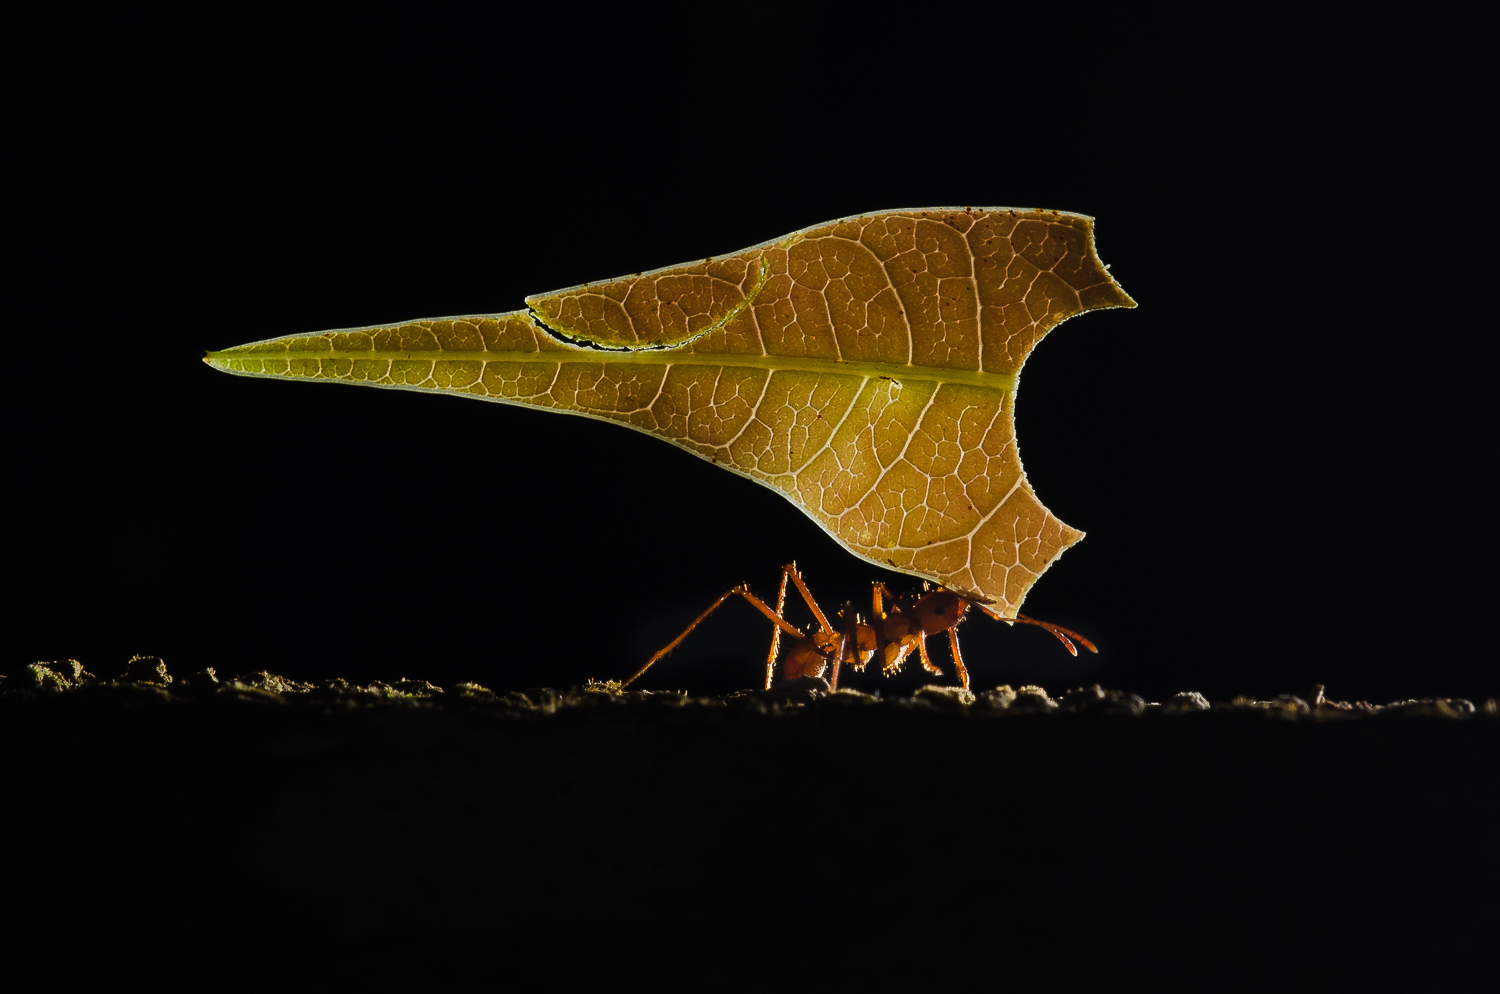 Leaf cutter ants are capable of carrying leaves may times their own body weight. They cut the leaves and bring them back to their nests to cultivate a fungi.